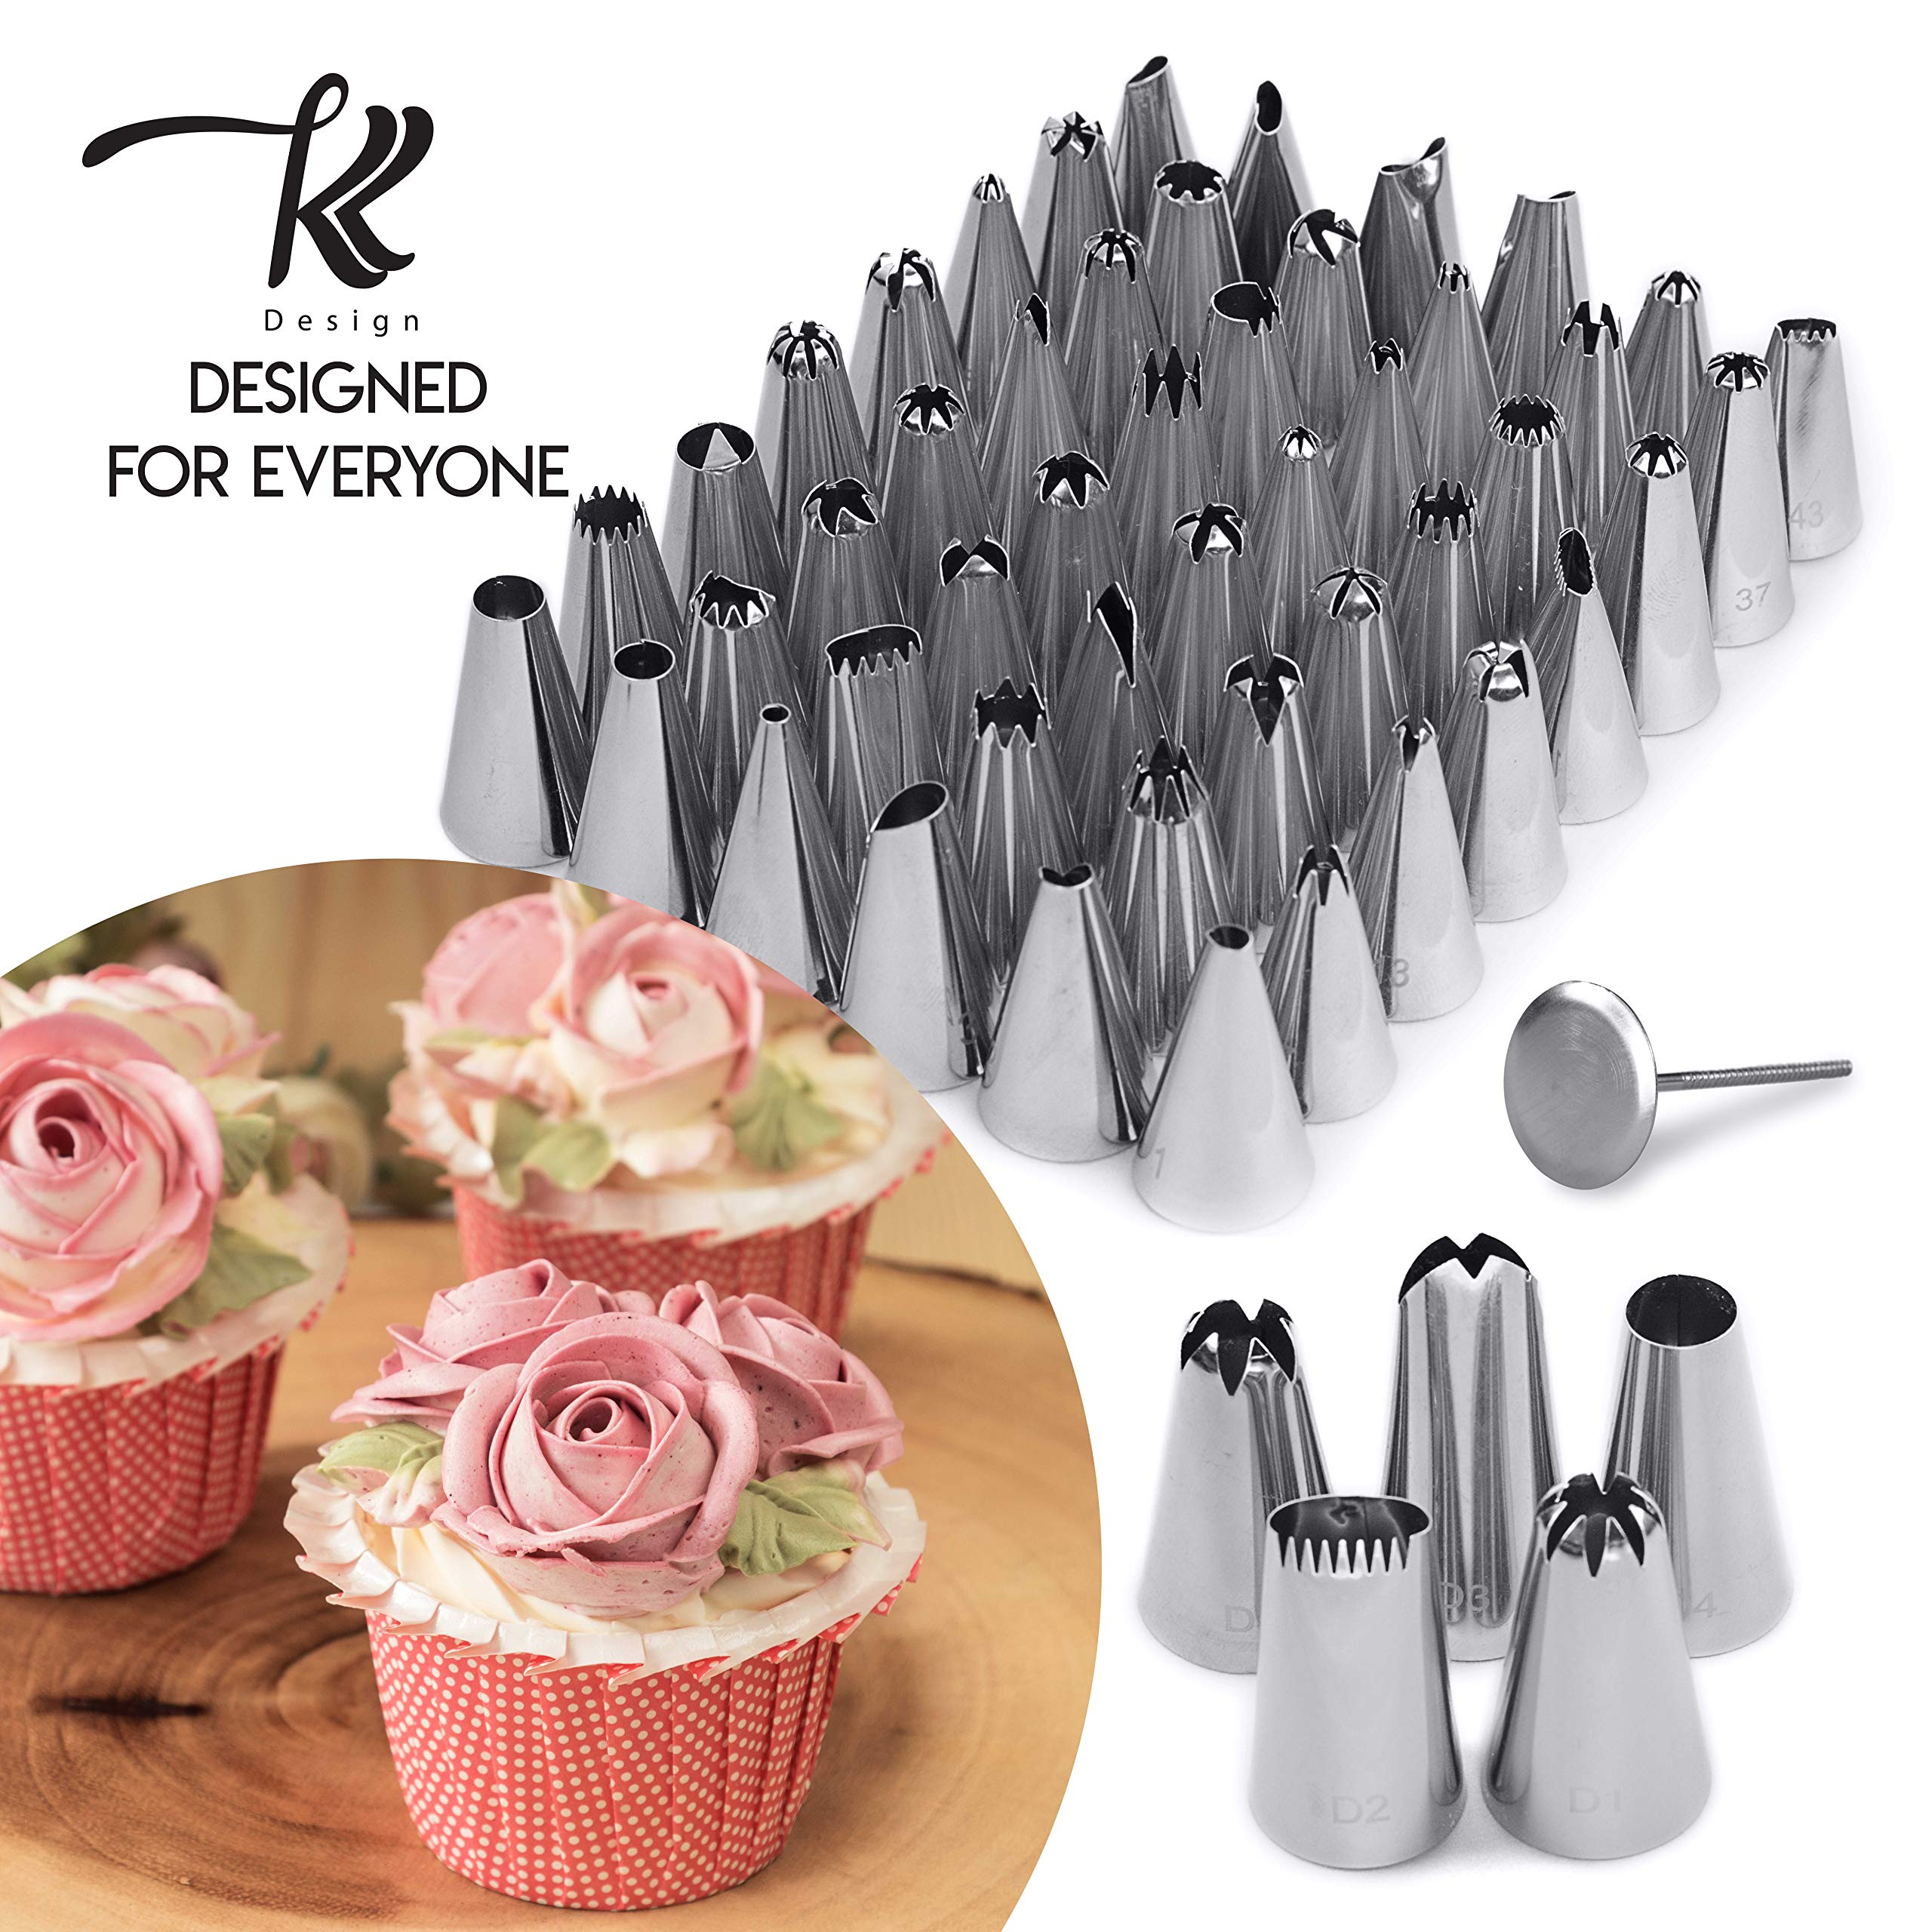 186 Pcs Cake Decorating Supplies Kit,Aluminium Rotating Turntable Stand,Frosting Piping Tips,100 Disposable Bags,Couplers,Scrapers,Spatulas,Cutter,Smoother,Flower Nails,Lifter,Baking Tools Set by K&K Design (Image #2)